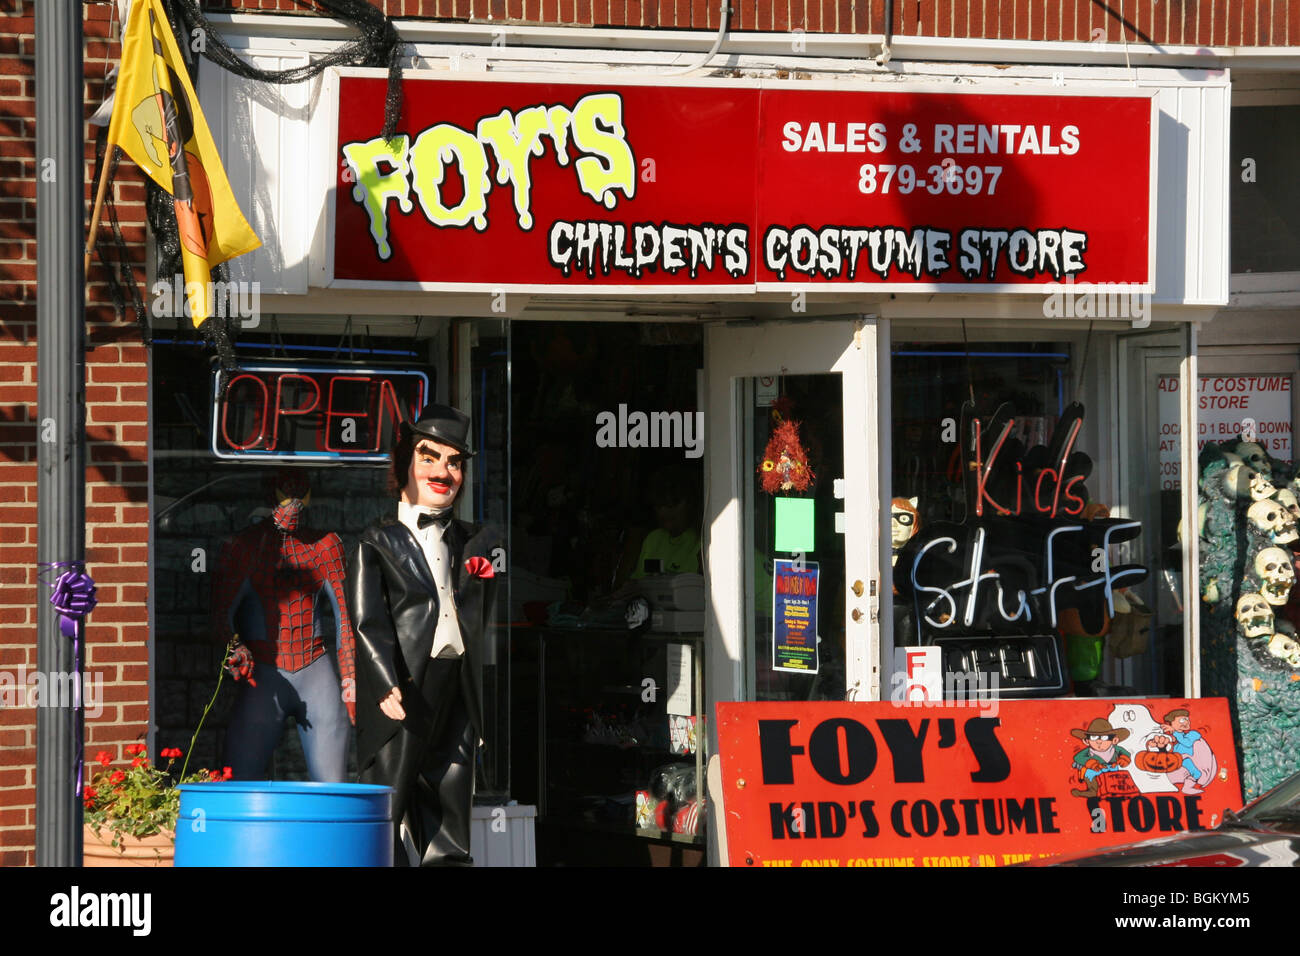 foys halloween store in ohio stock photos & foys halloween store in